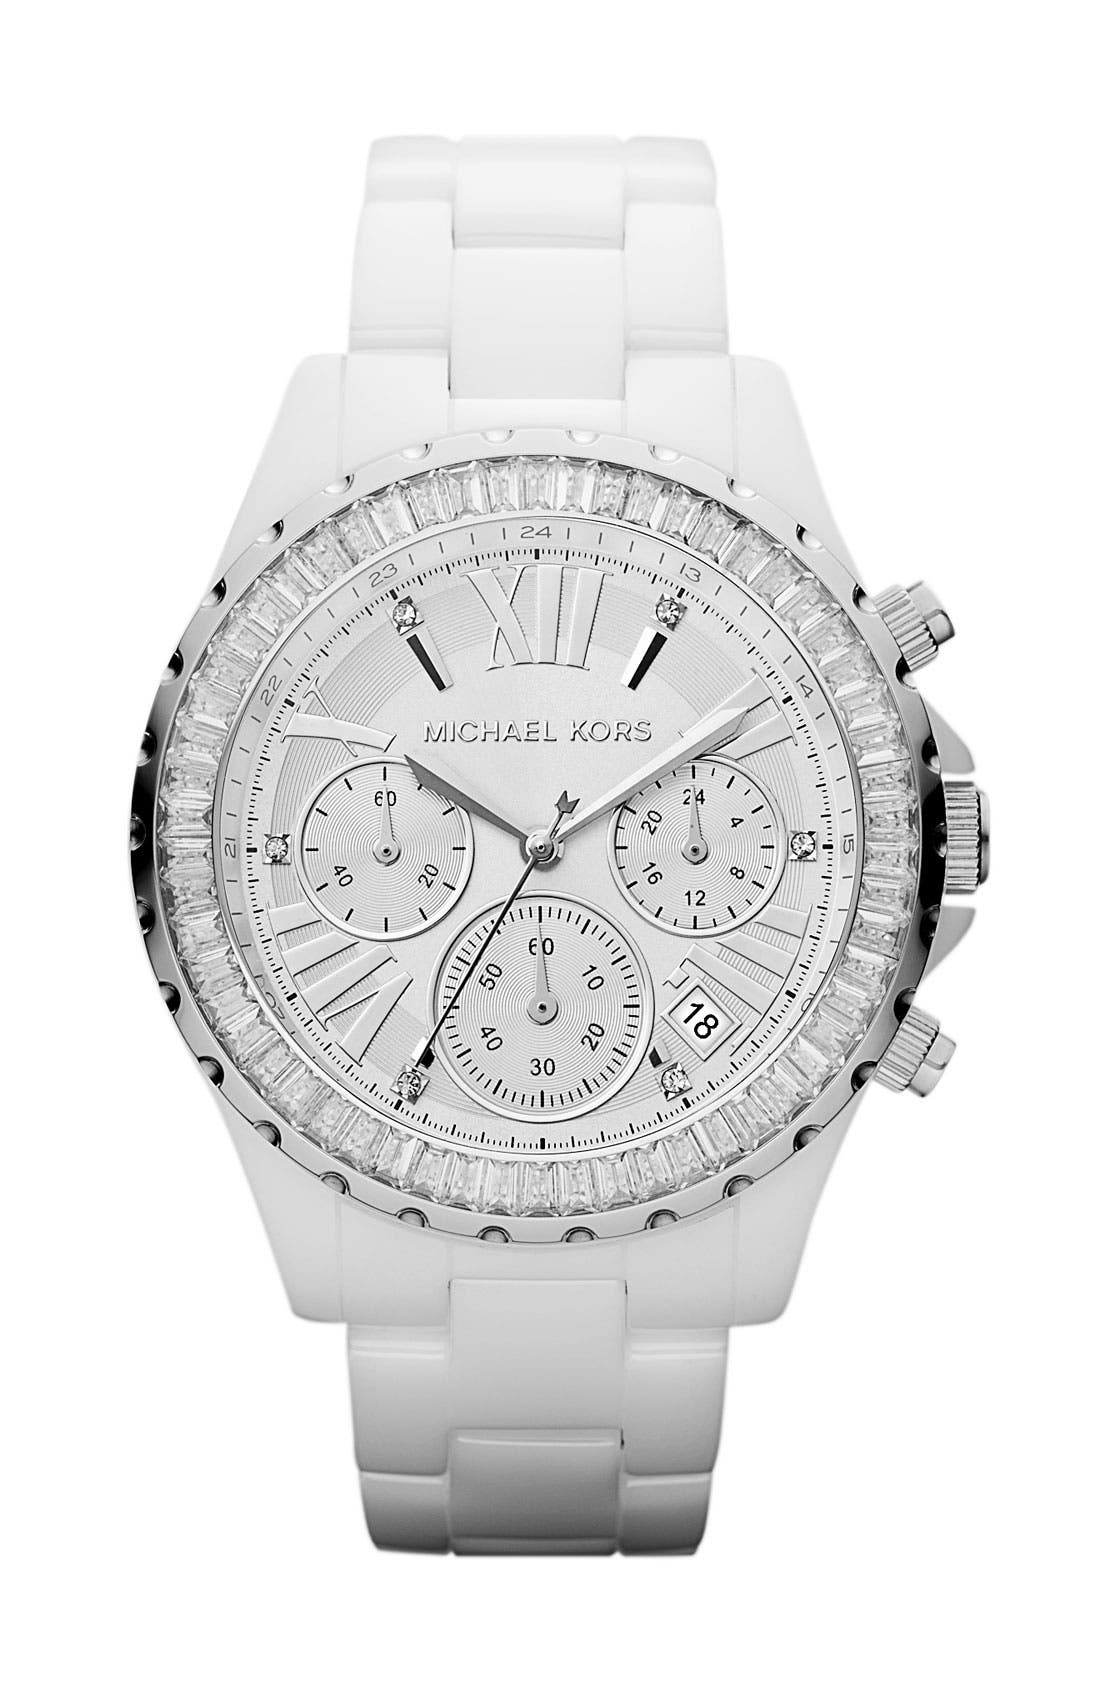 Main Image - Michael Kors 'Madison' Crystal Bezel Ceramic Watch, 41mm